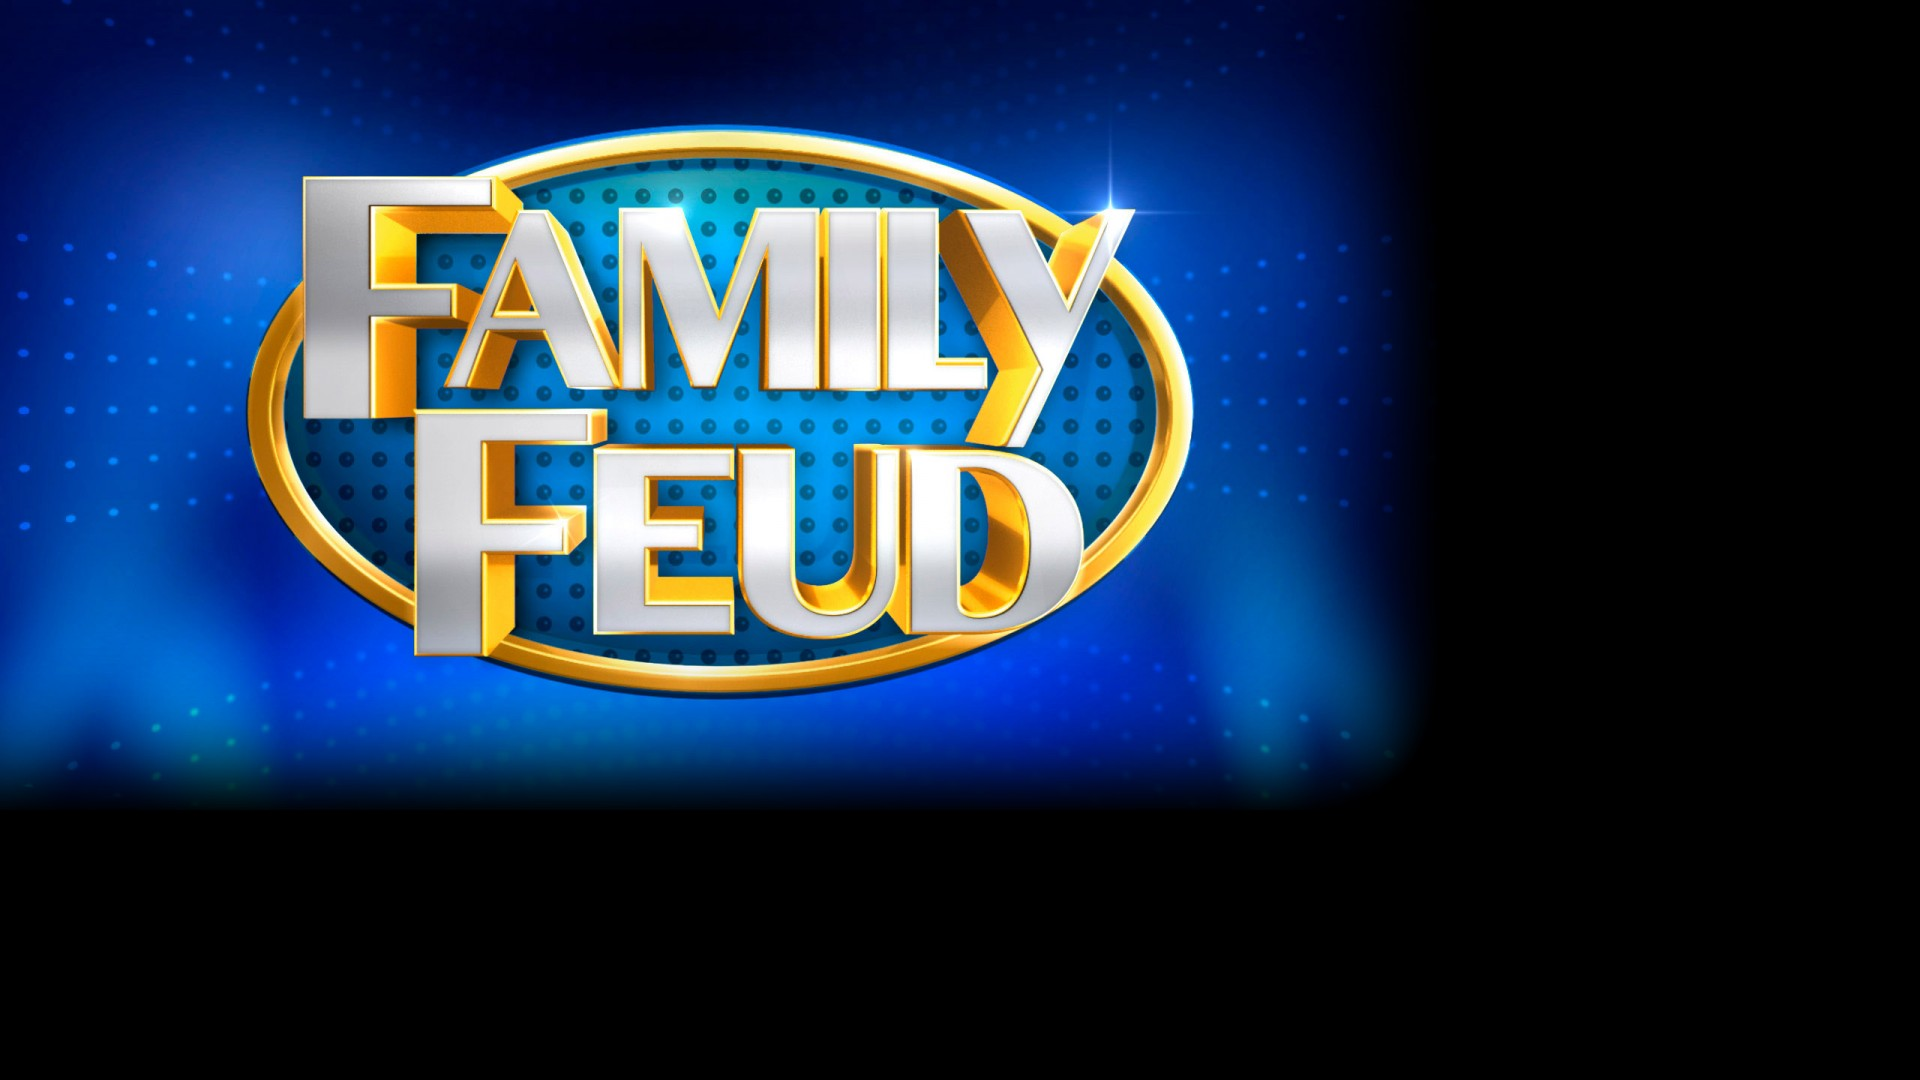 Family Feud Name The Noisiest Room In The House